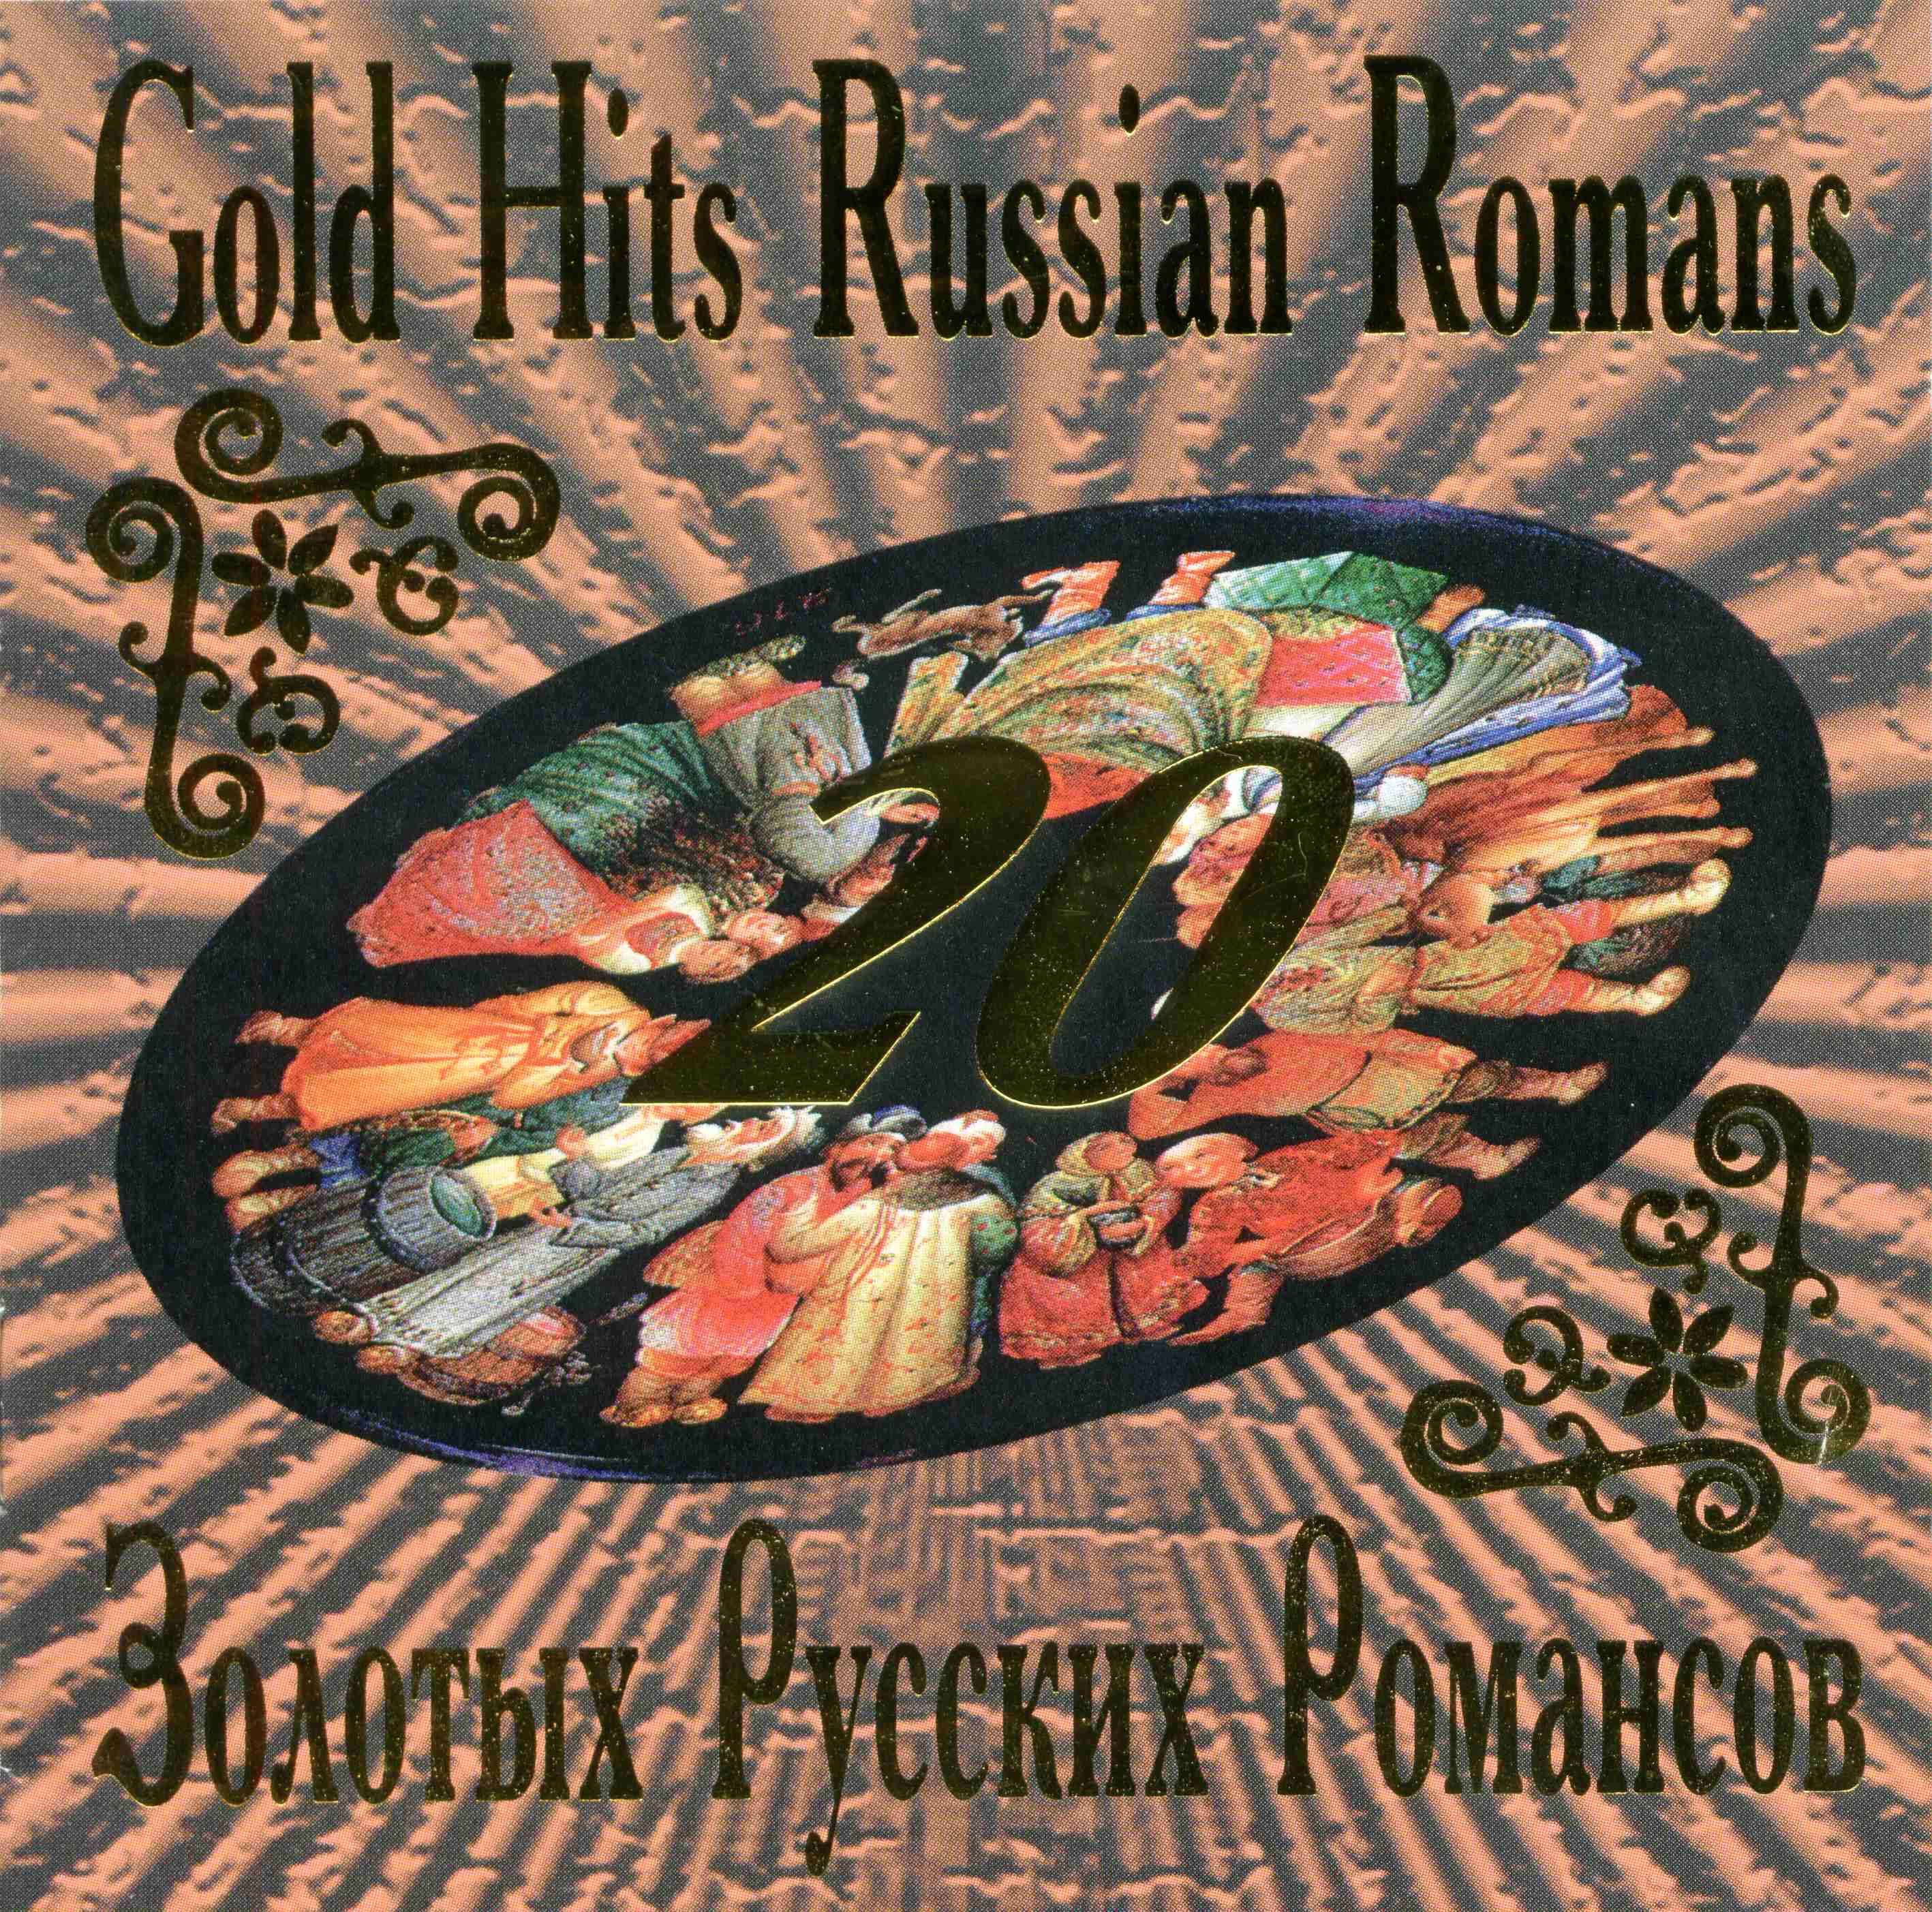 Gold hit russian romans001